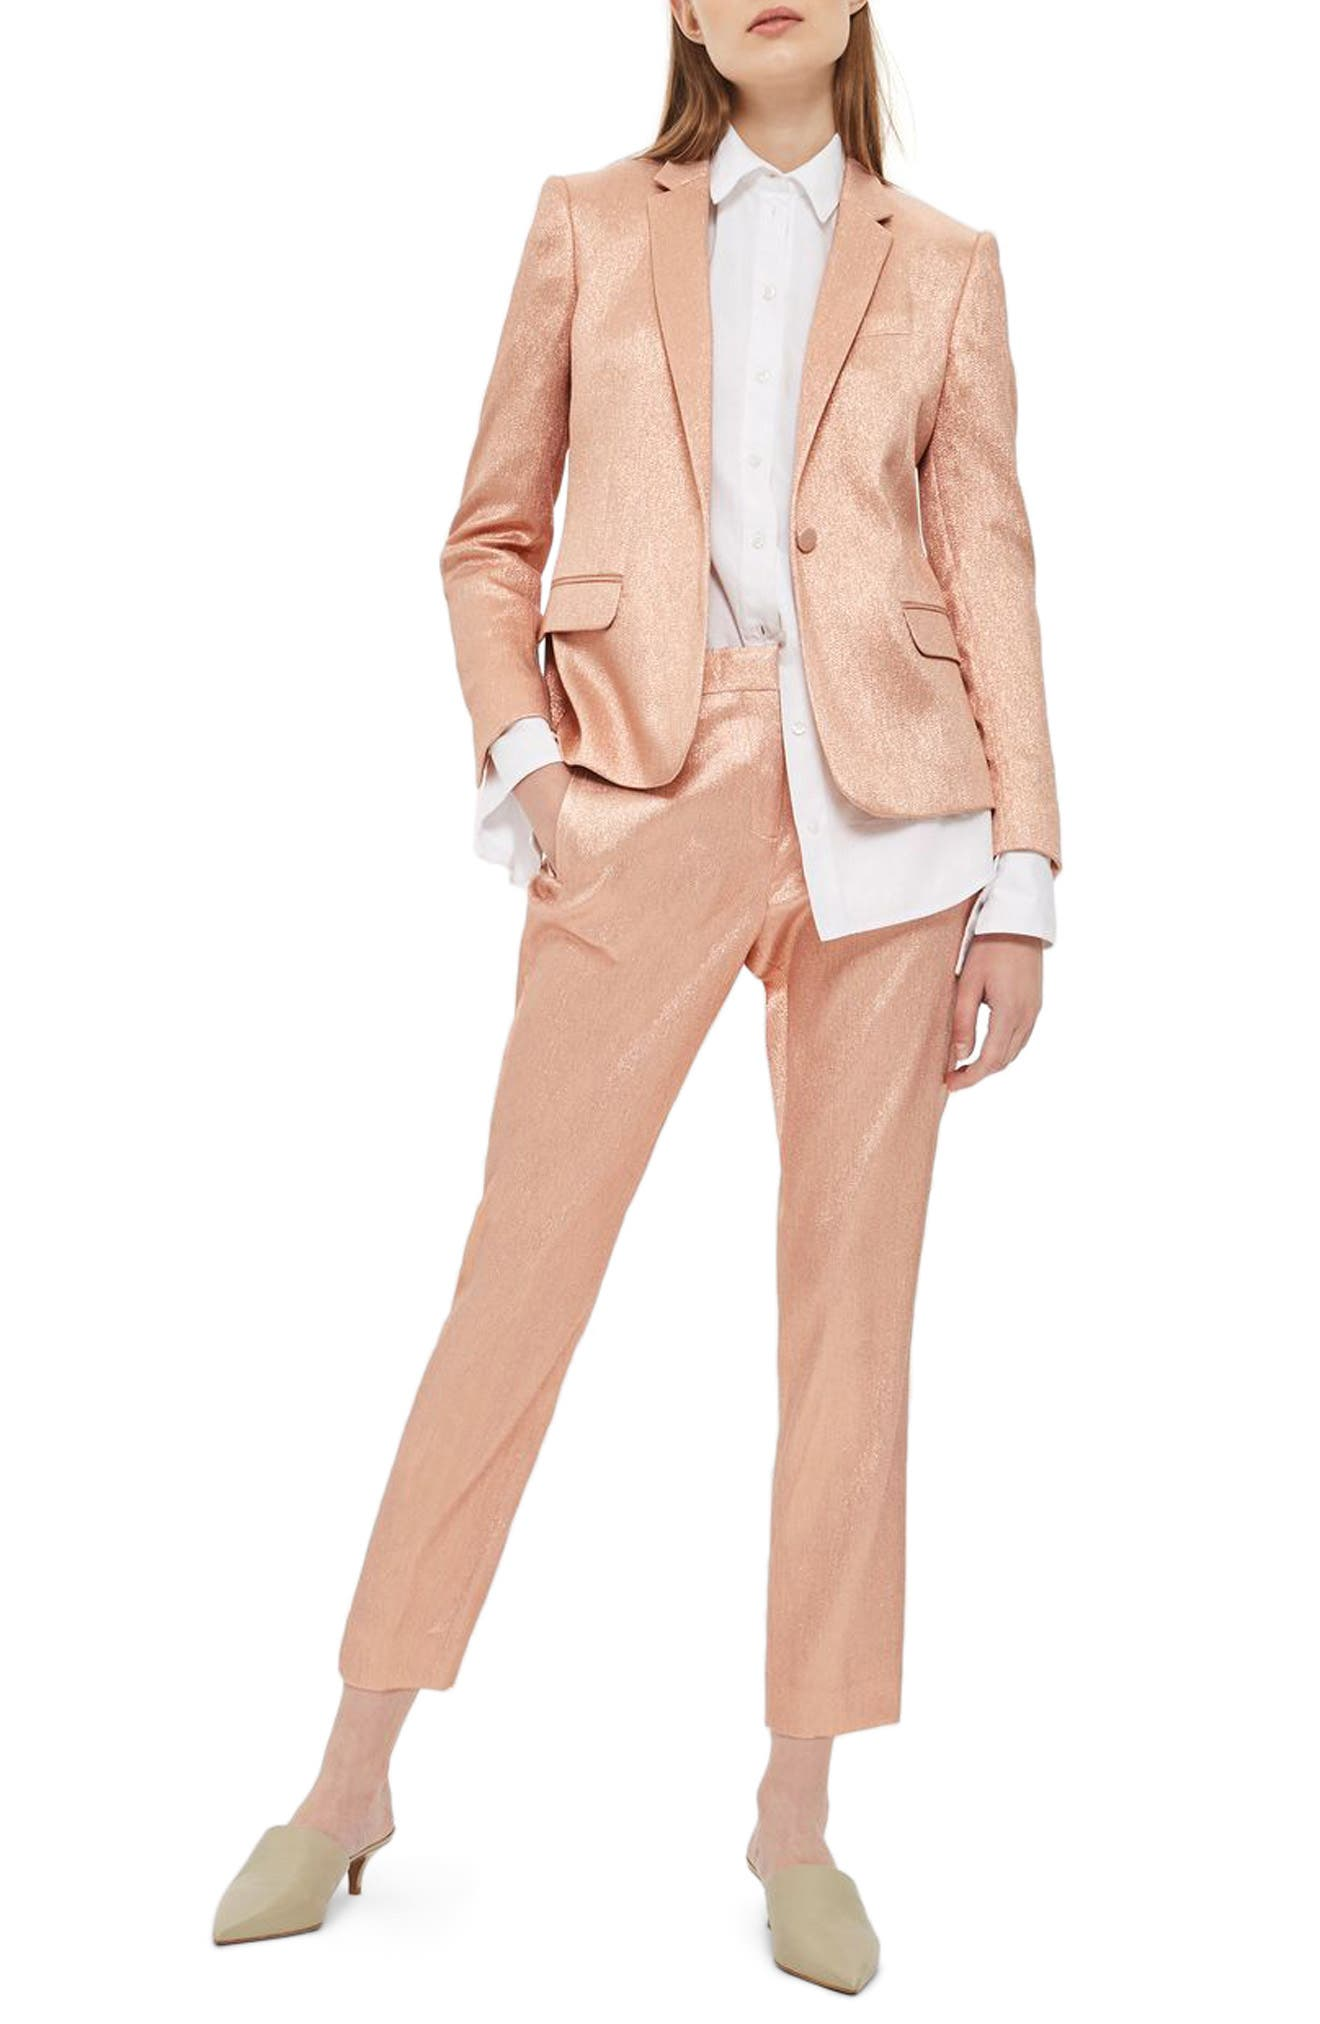 Topshop Metallic Glitter Suit Jacket